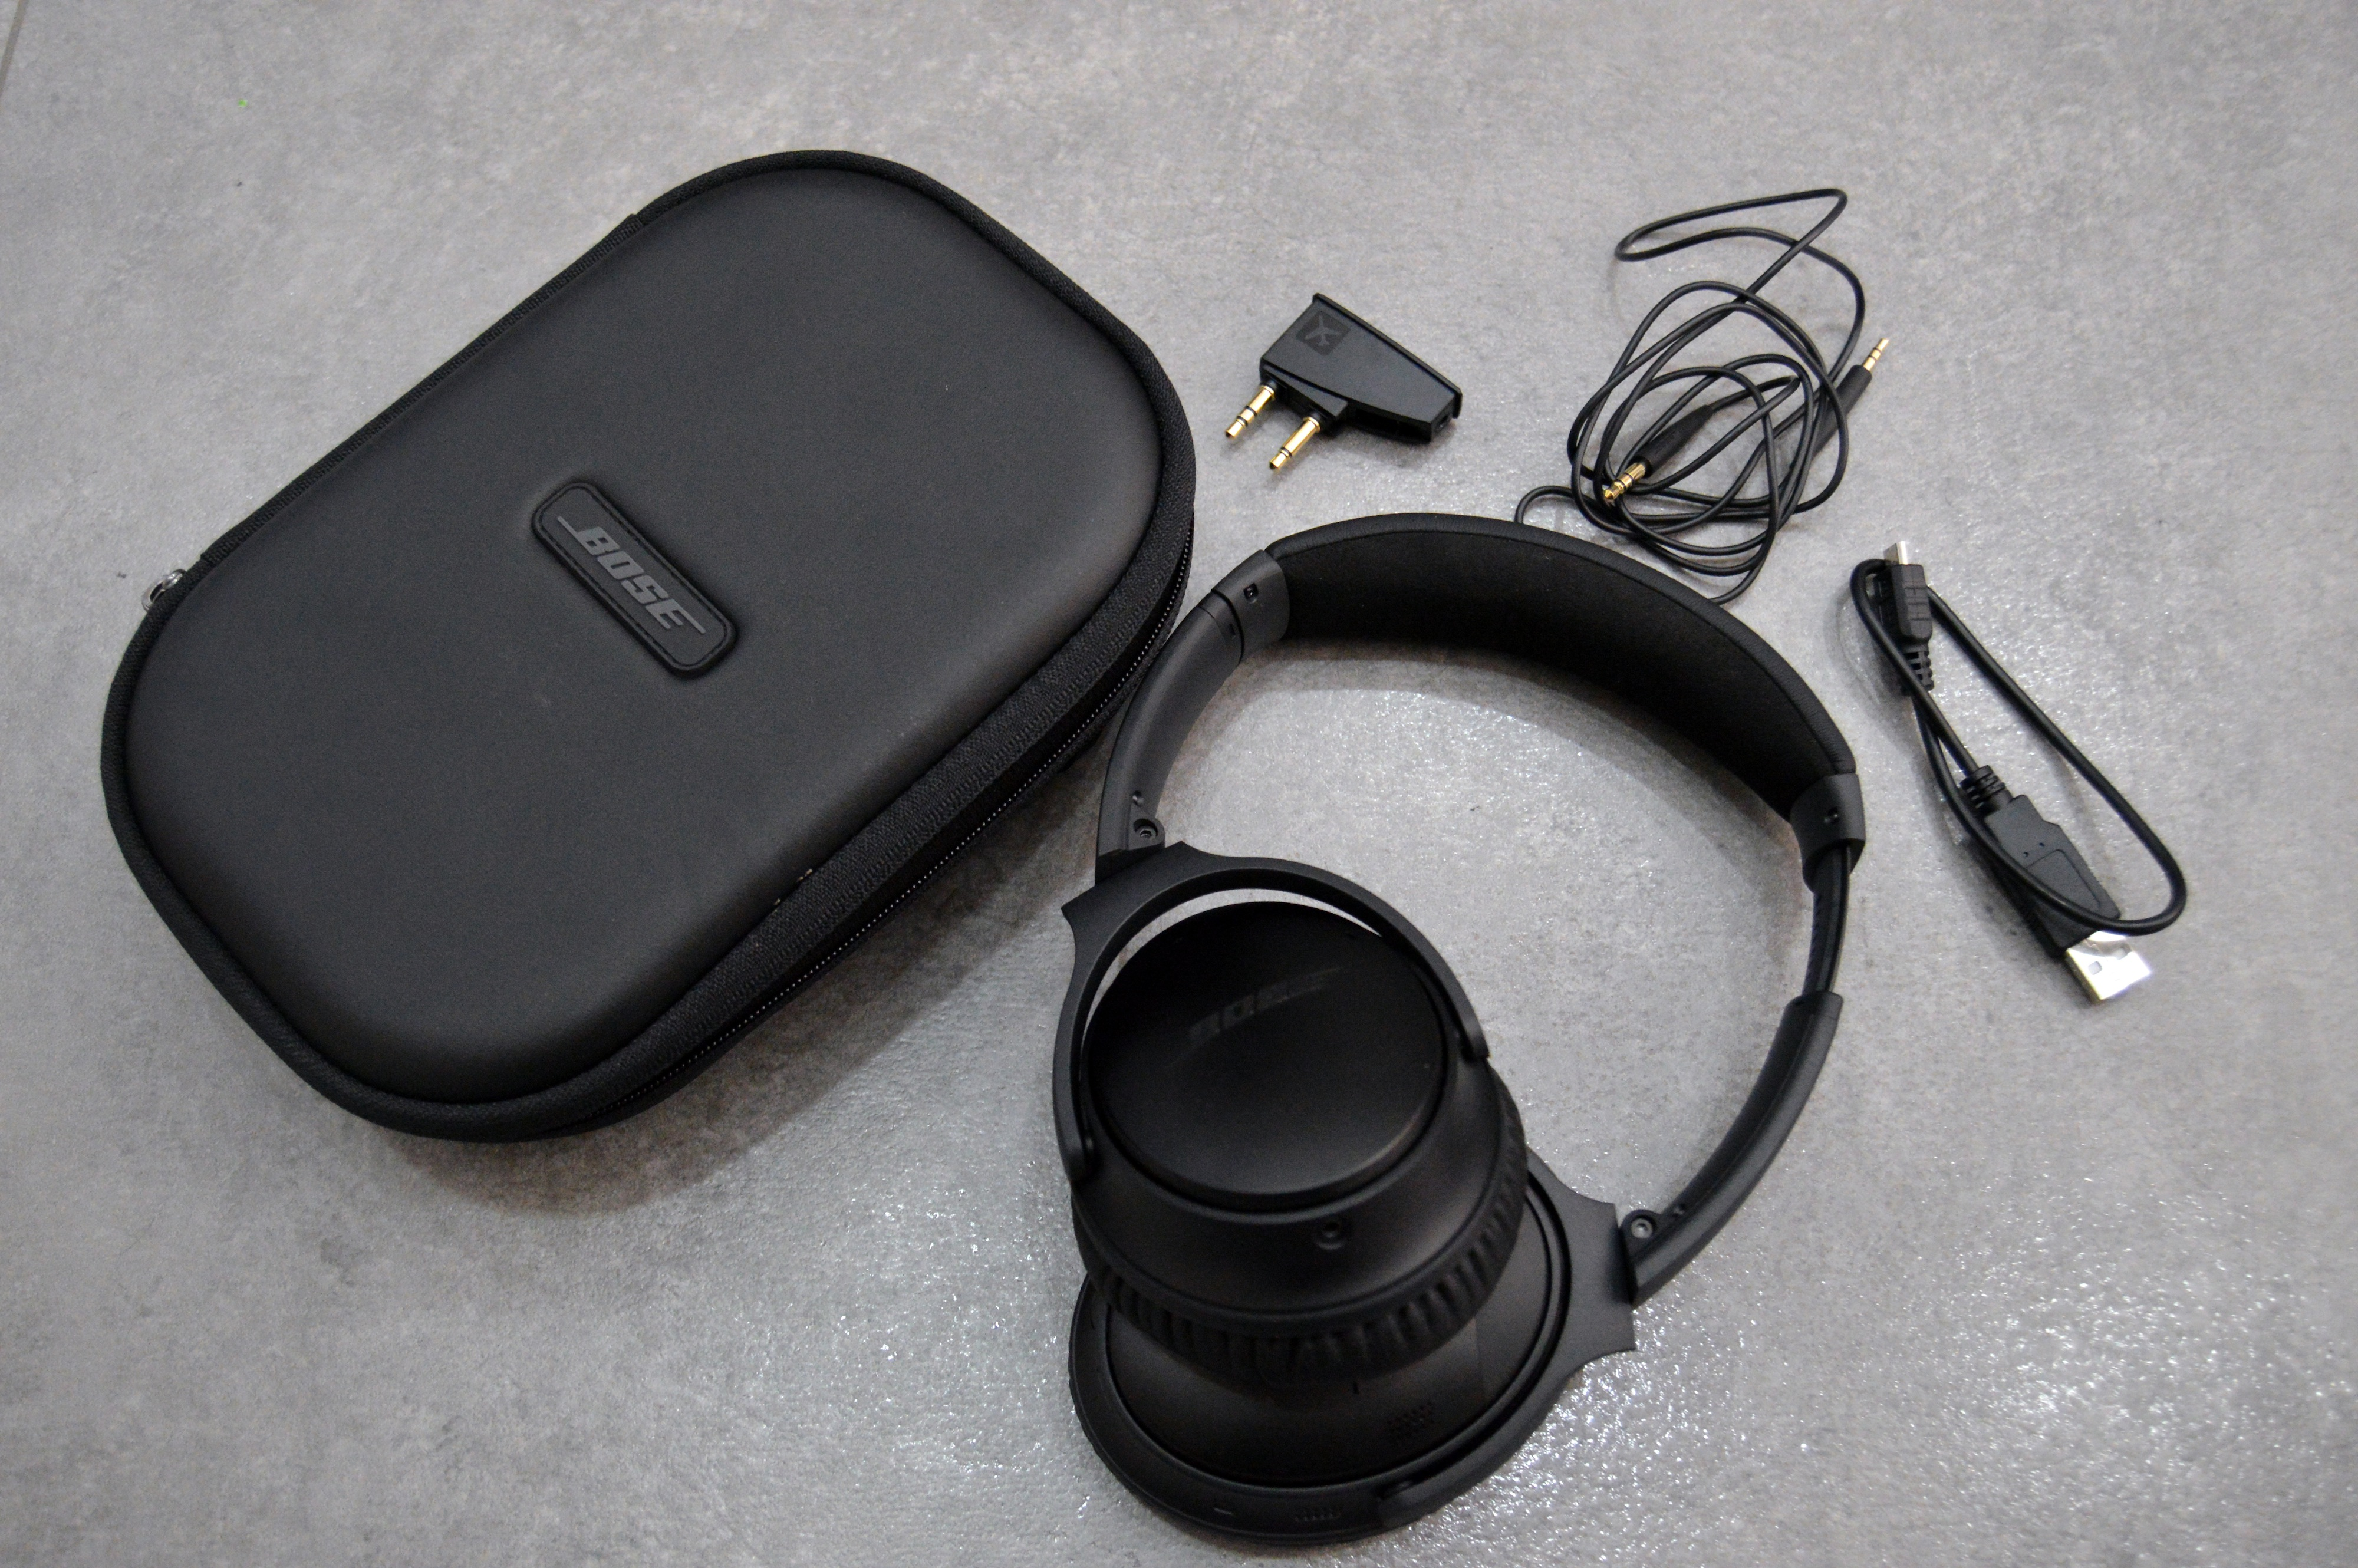 bc6b44d31a8 Bose QuietComfort 35 review: Superb quiet and comfort come with a ...